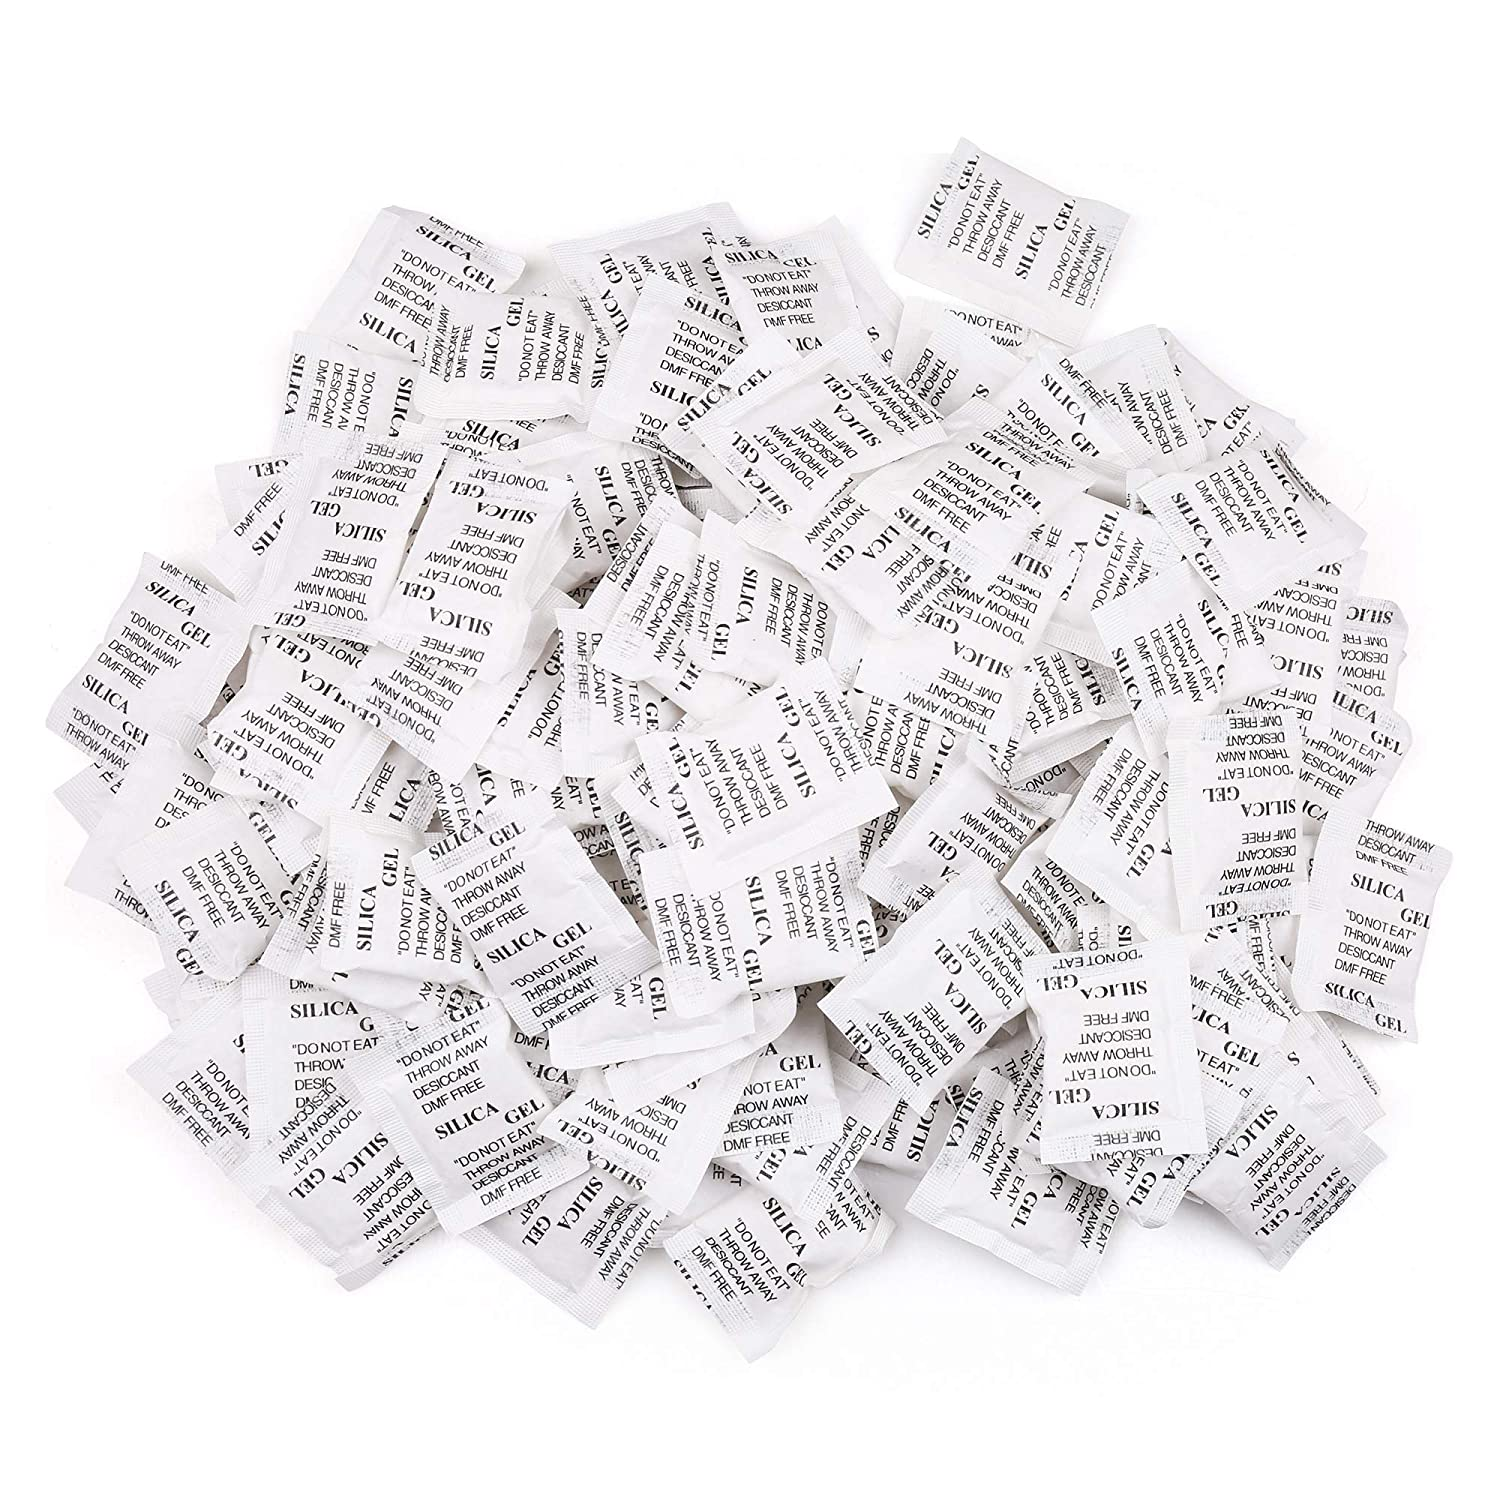 25 Packets 1g Silica Gel Desiccant Non Toxic Moisture Absorber Dehumidifier